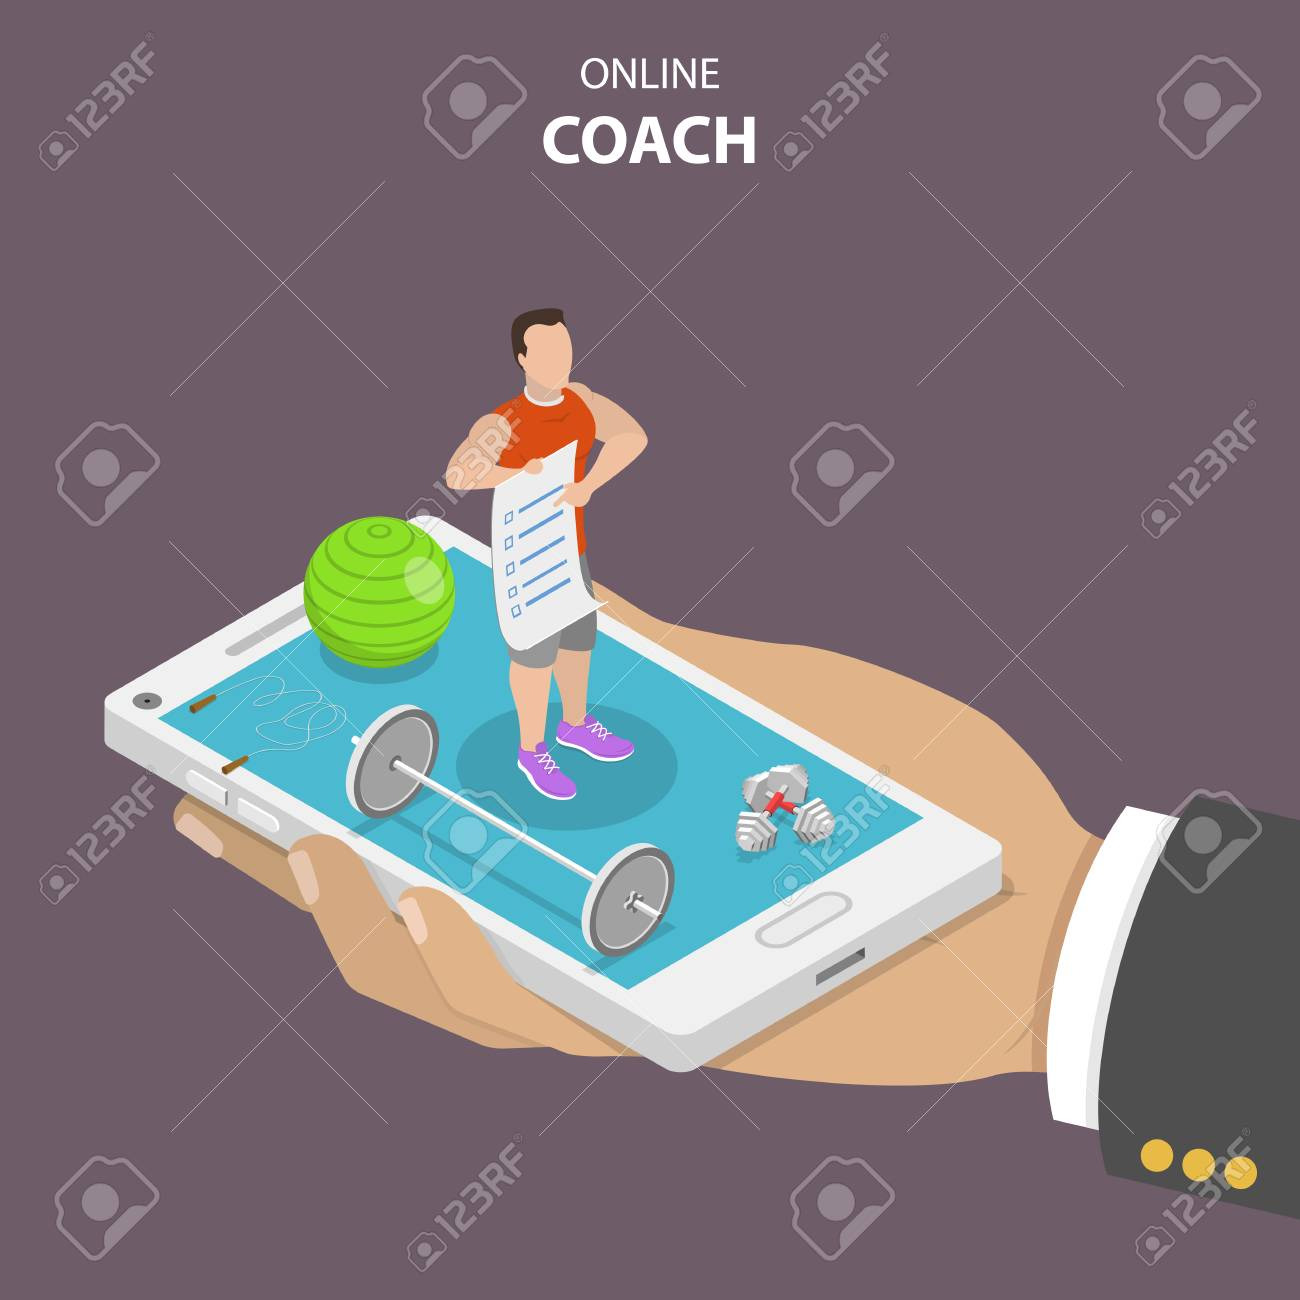 Online coach flat isometric vector concept. Hand is holding a smartphone with a fitness instructor on it that is surrounded by sport requisites. Instructor is holding in his hand a training program. - 91316760